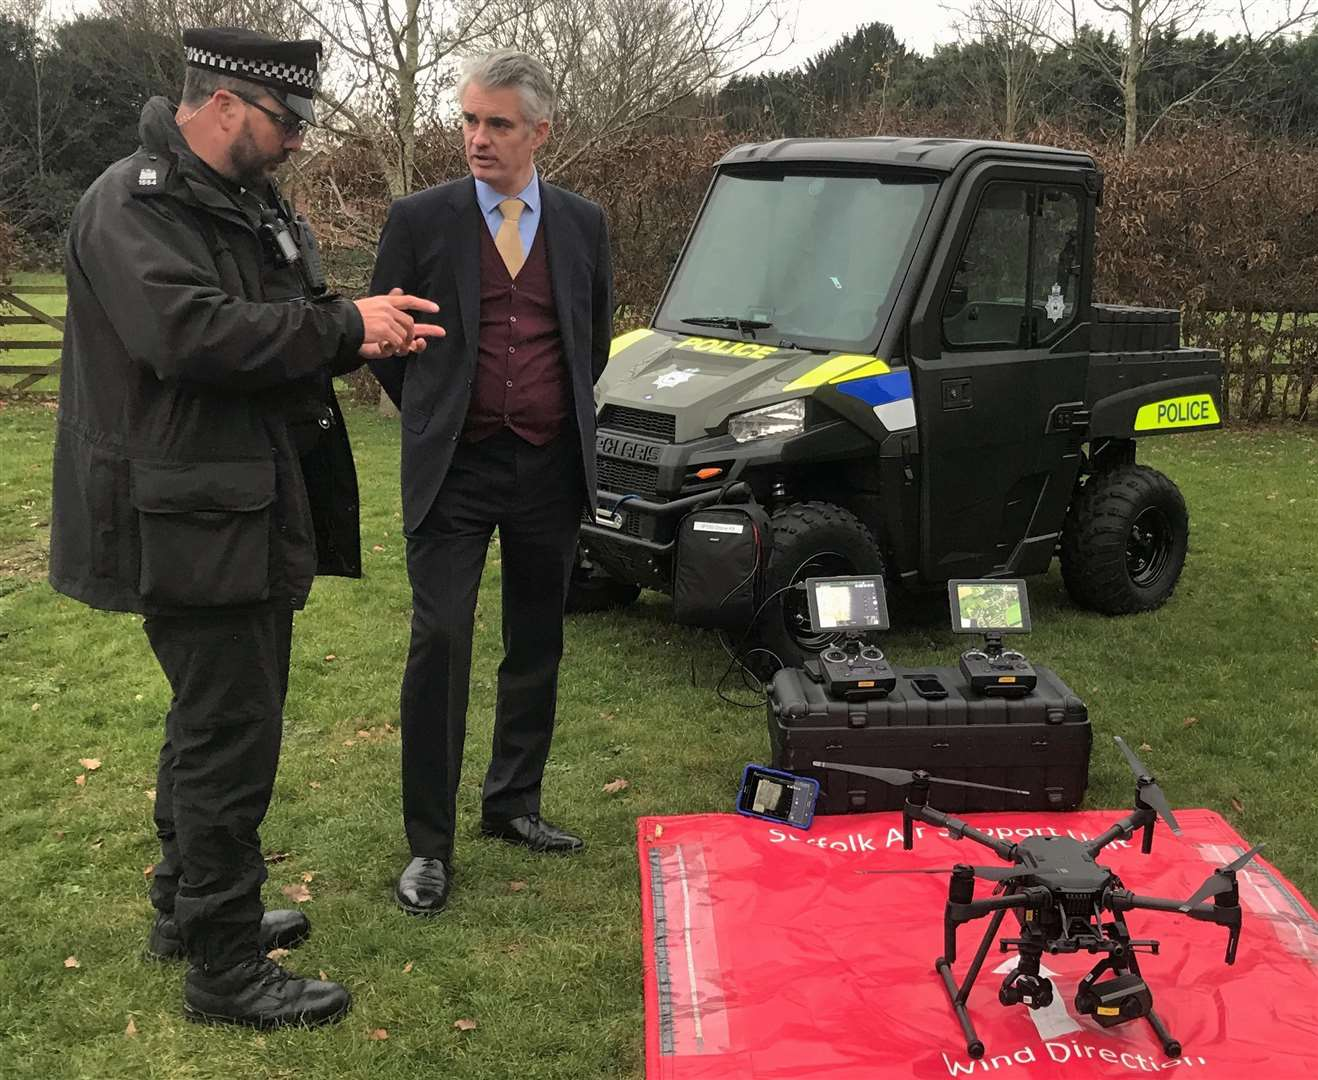 South Suffolk MP James Cartlidge discusses Suffolk Constabulary's use of a drone to tackle hare coursing, during a rural crime summit in Lavenham in December 2018. Submitted photo. (6424379)